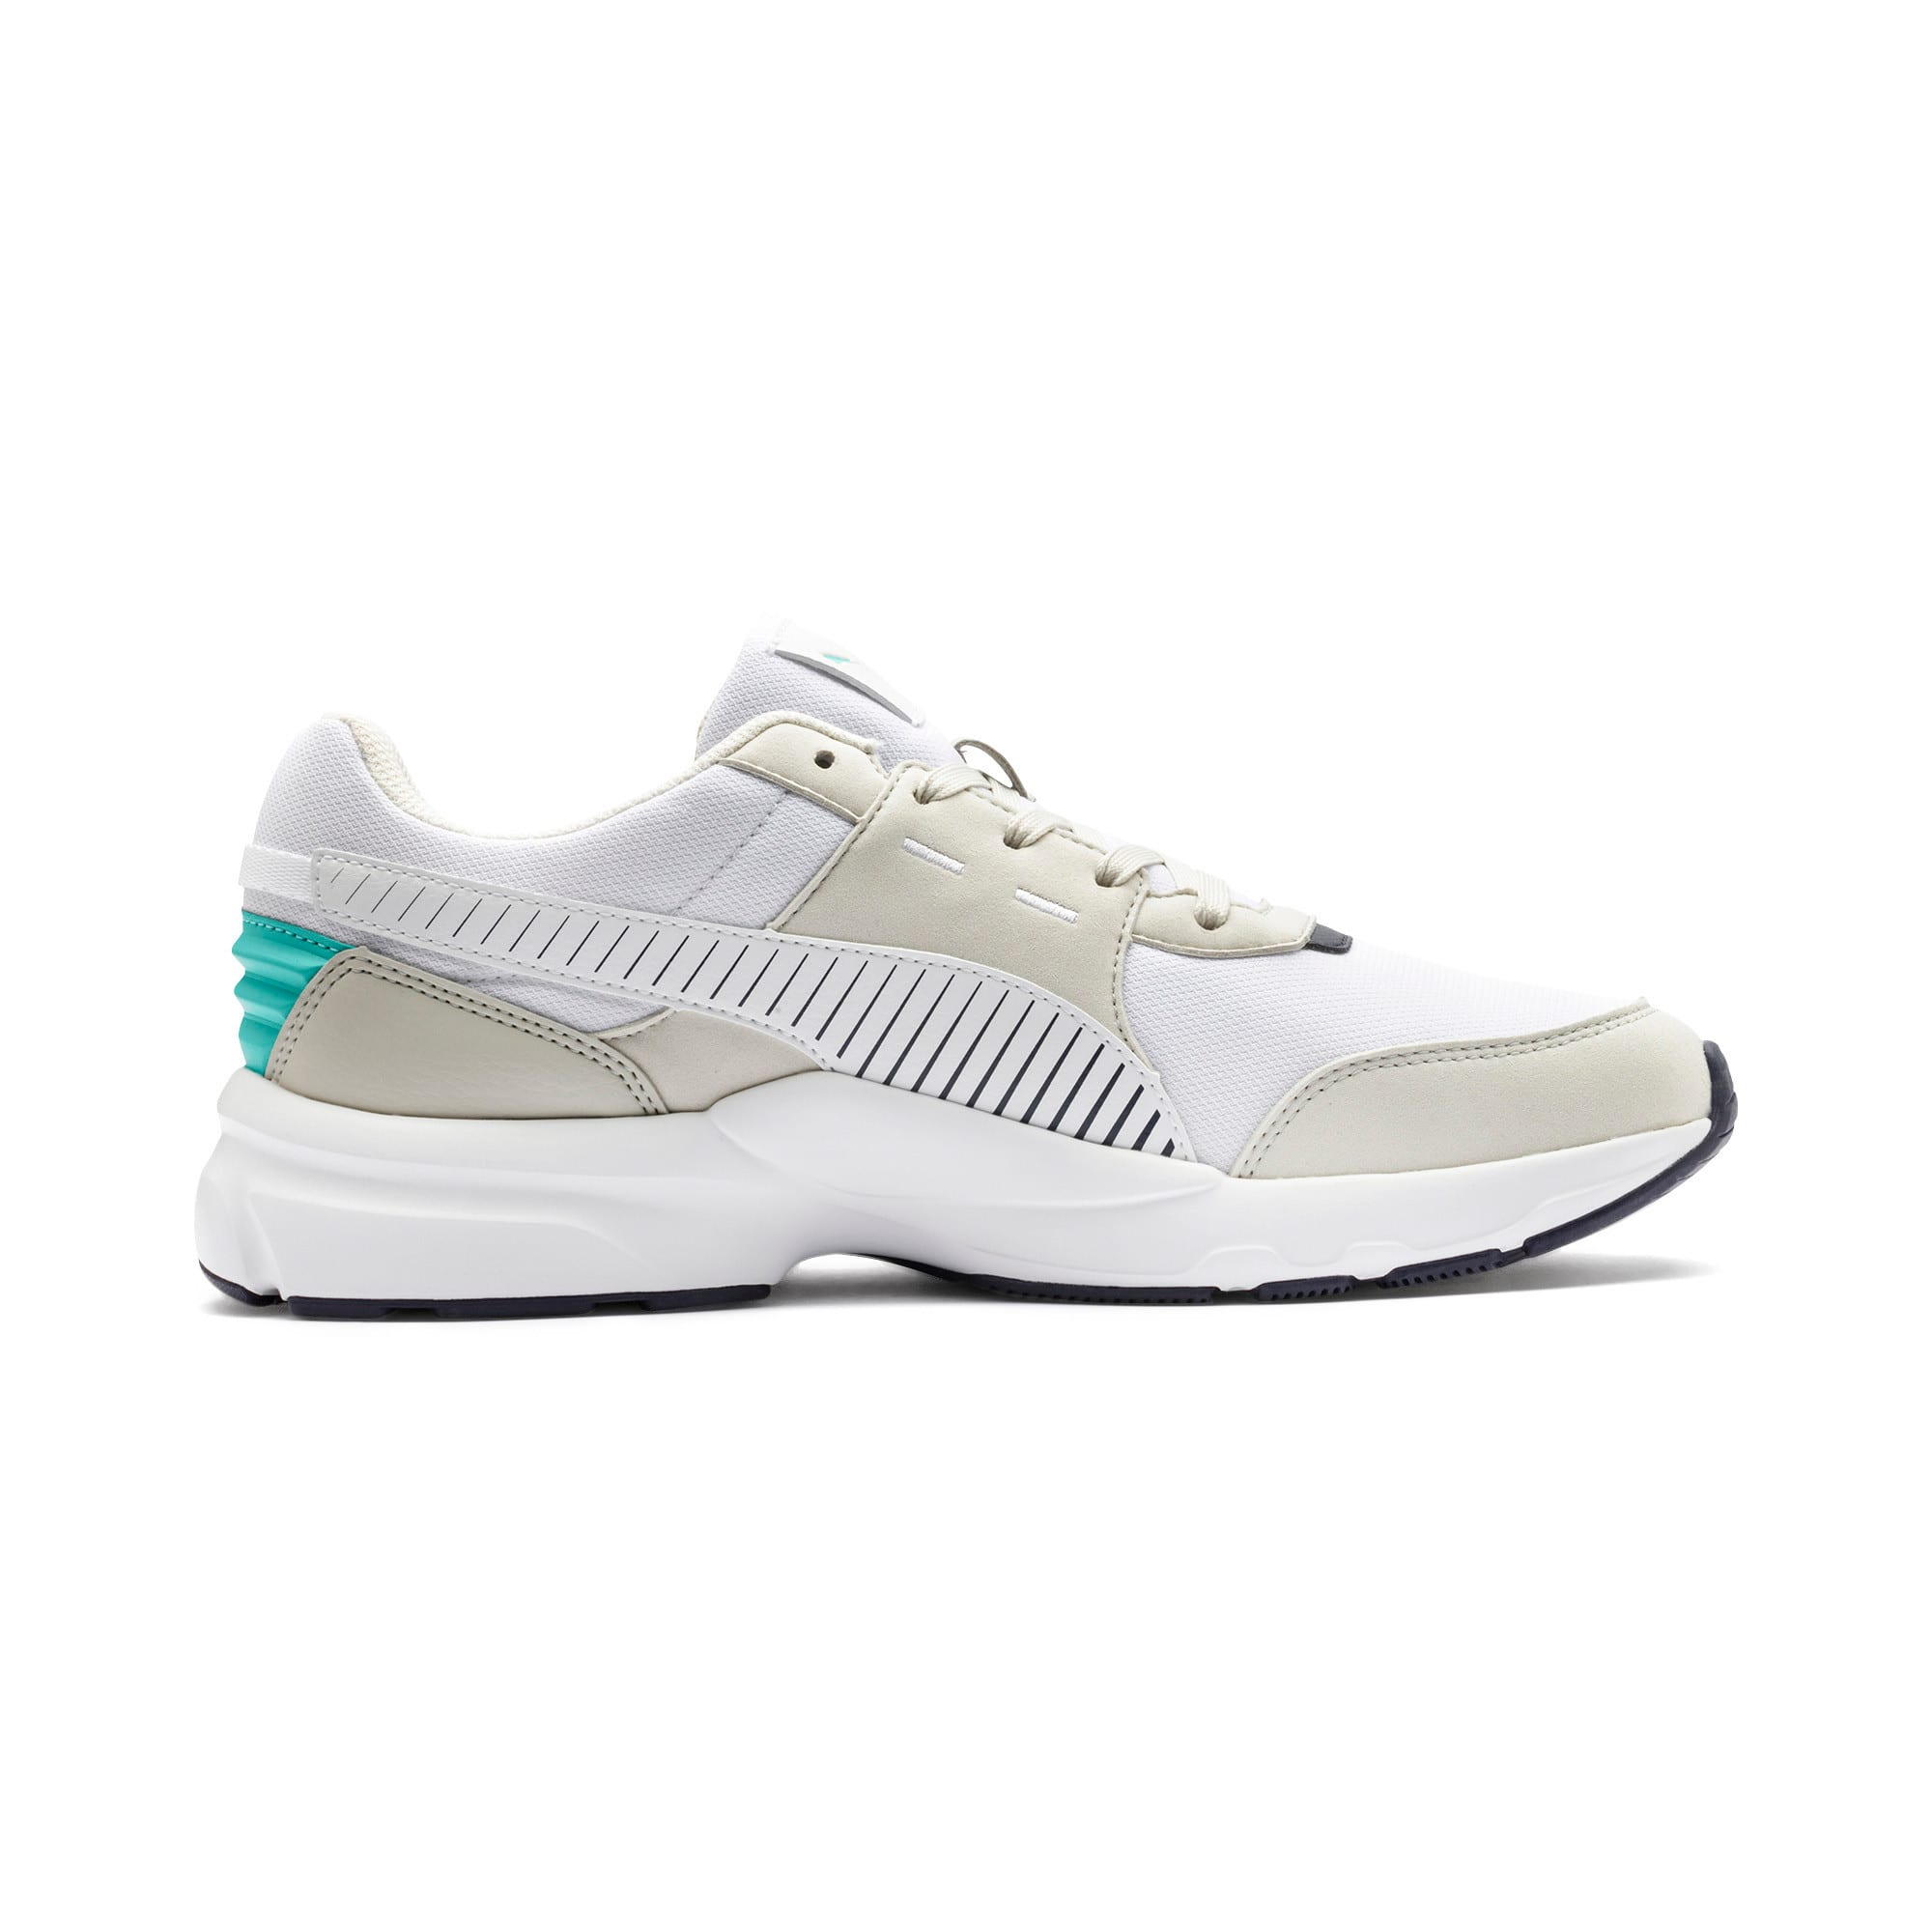 Thumbnail 6 of Future Runner Running Shoes, Wht-G Gray-Peacoat-Turquoise, medium